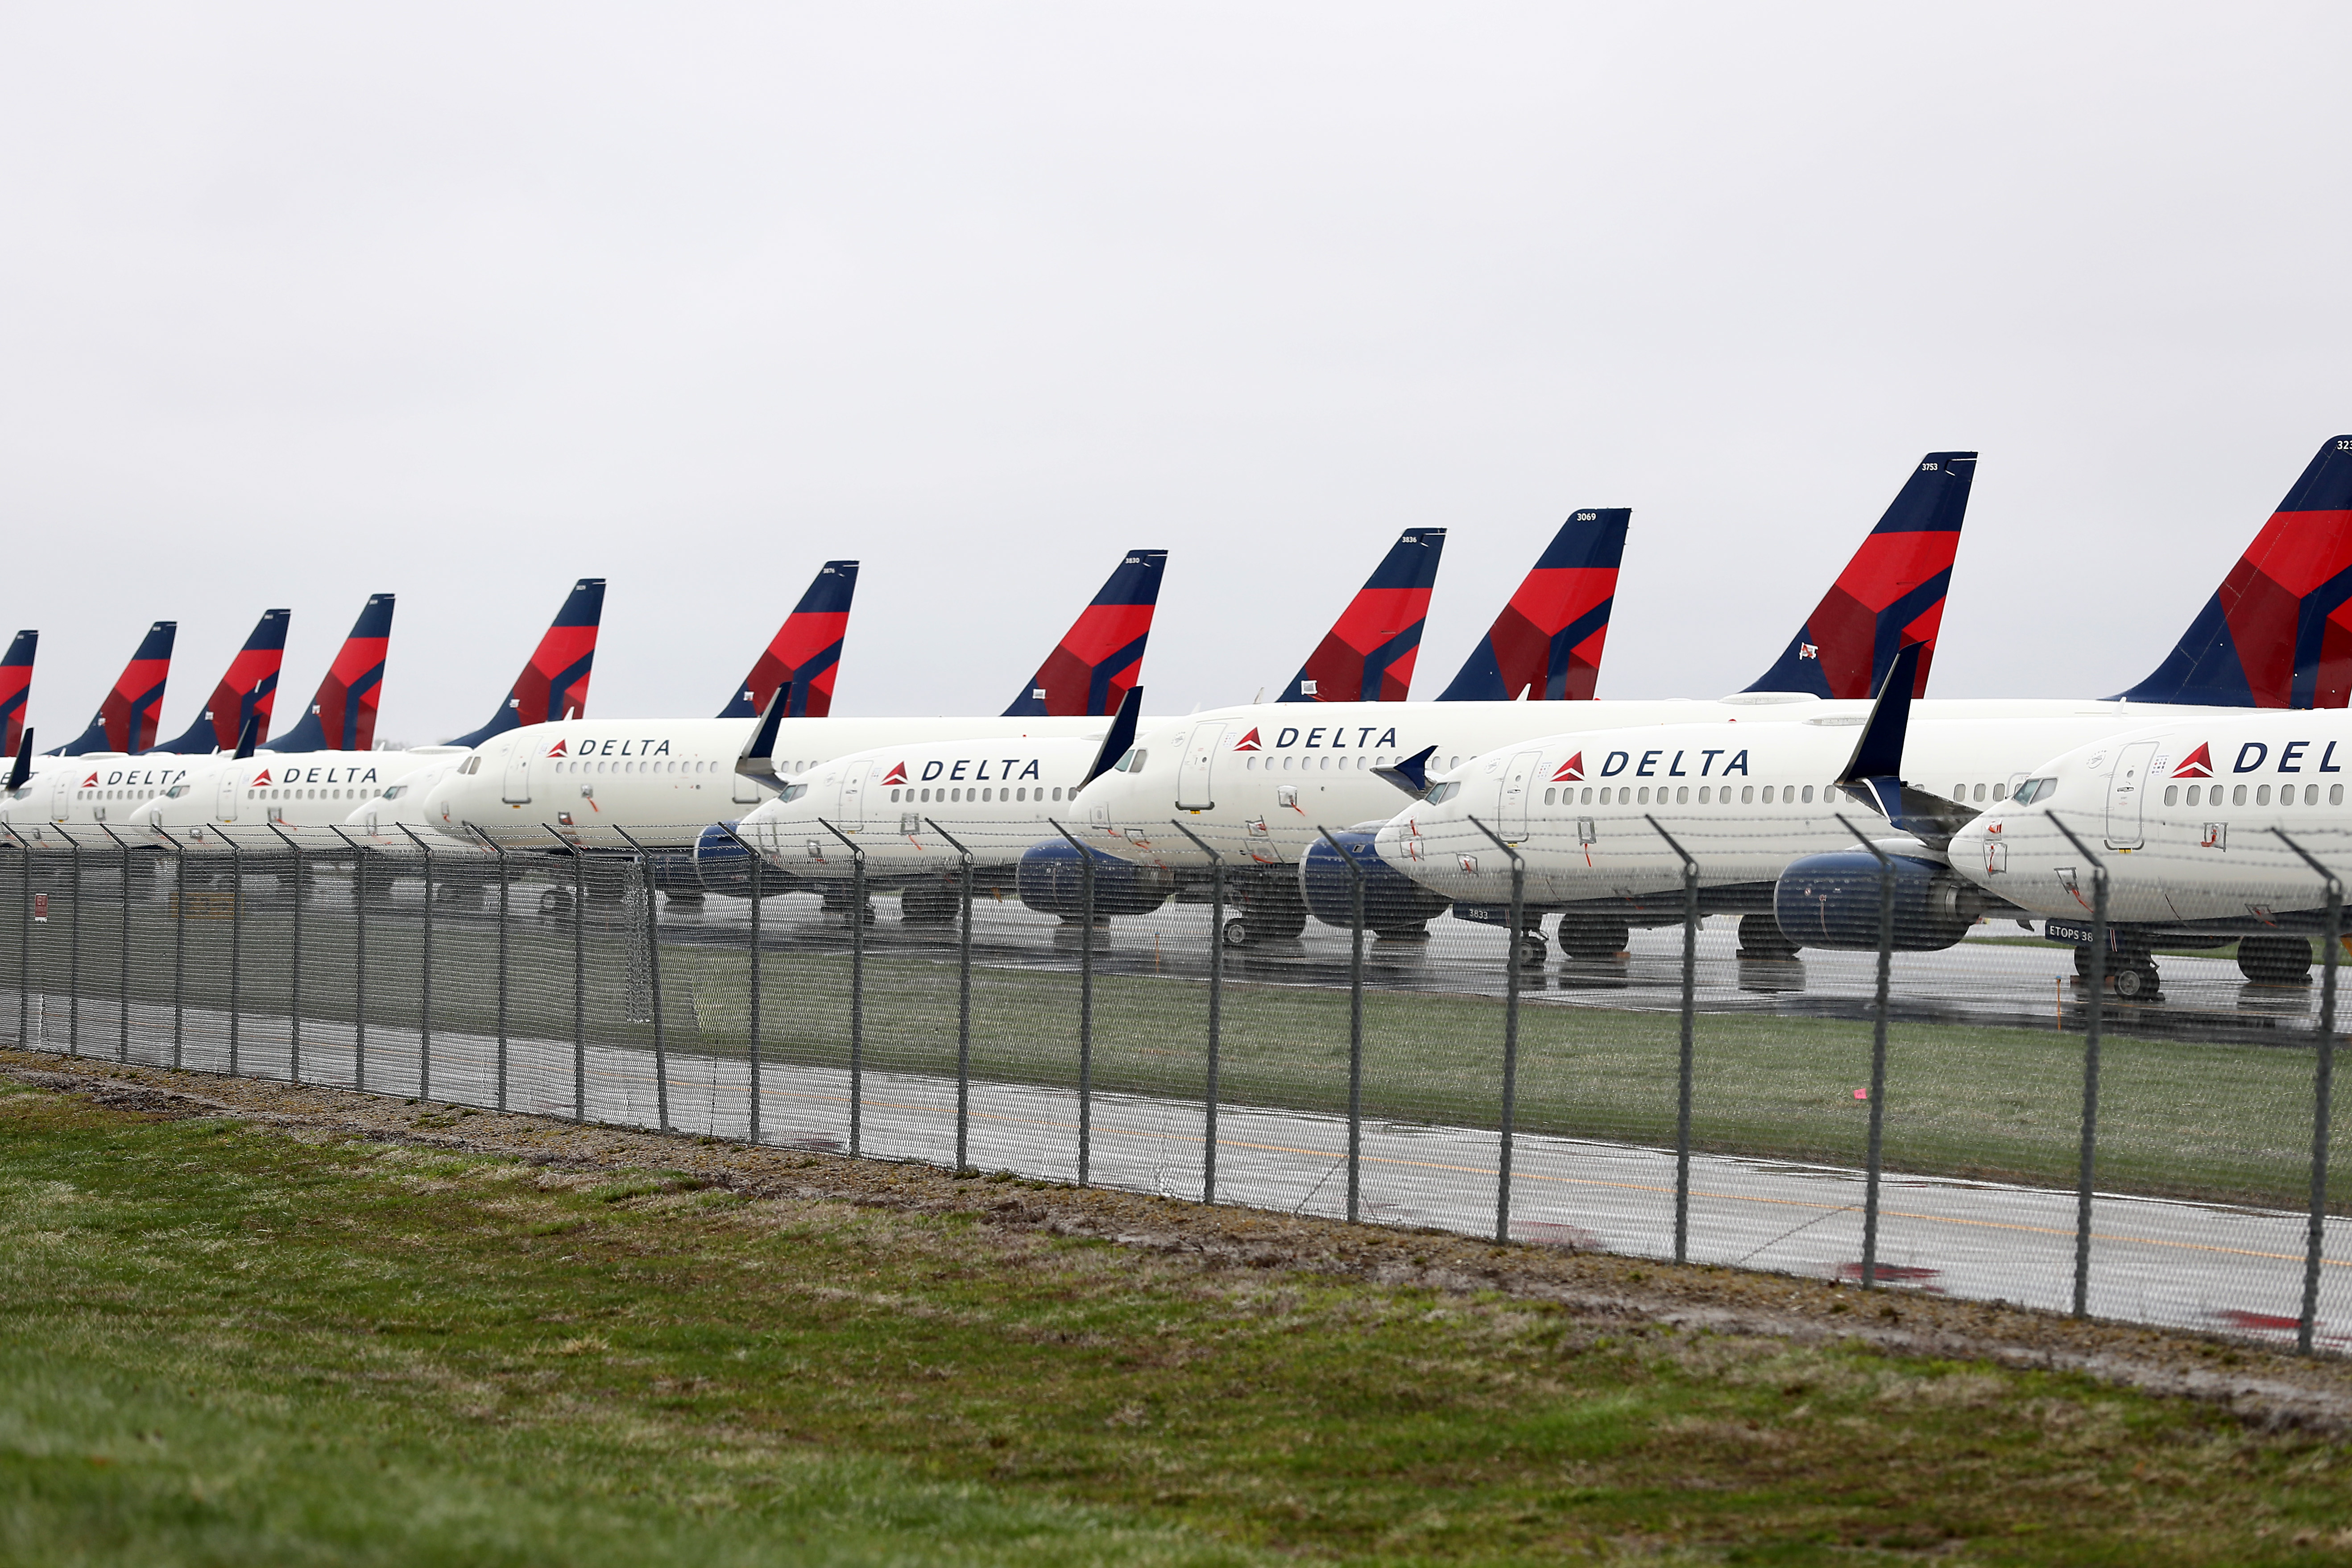 Planes belonging to Delta Air Lines sit idle at Kansas City International Airport on April 03, 2020 in Kansas City, Missouri. (Photo by Jamie Squire/Getty Images)